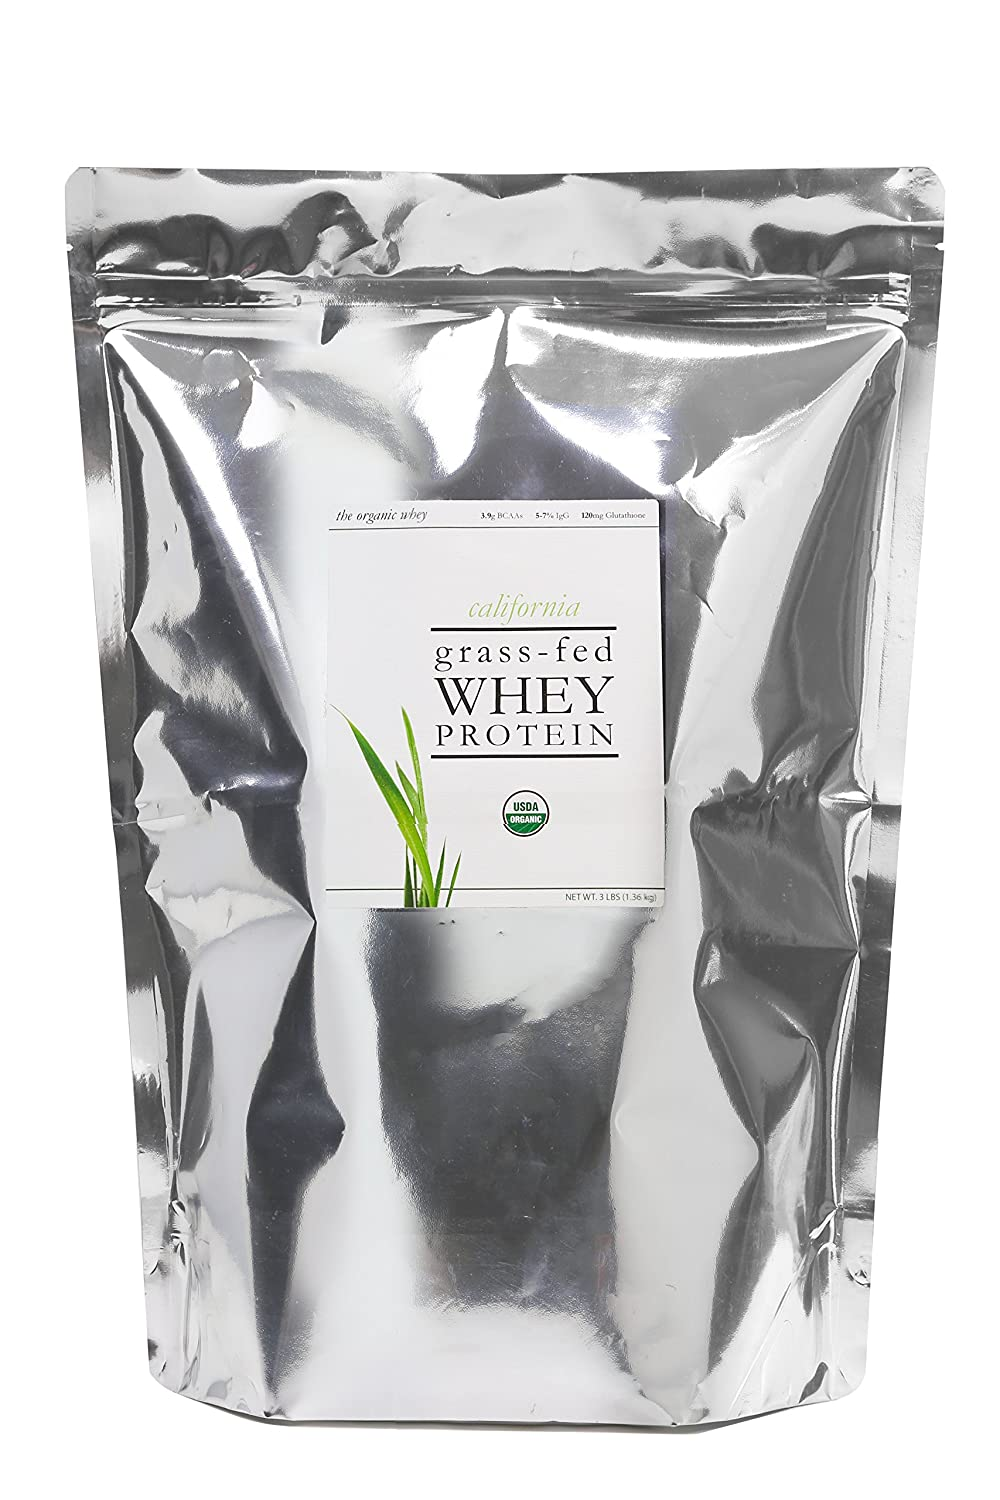 The Organic Whey Protein Powder